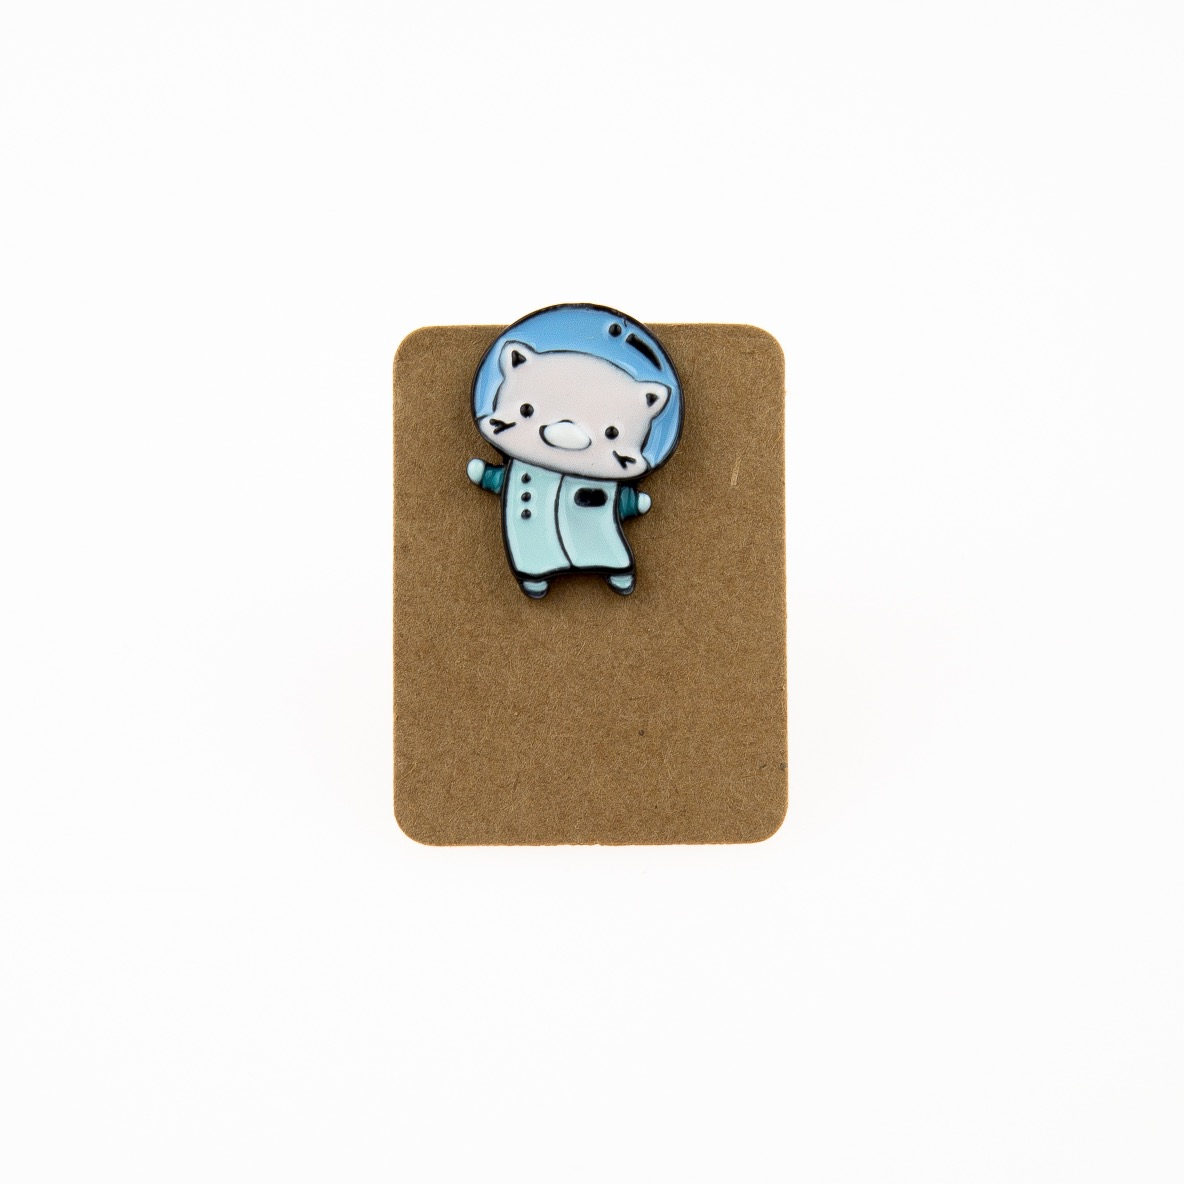 Metal Astronaut Cat Enamel Pin Badge